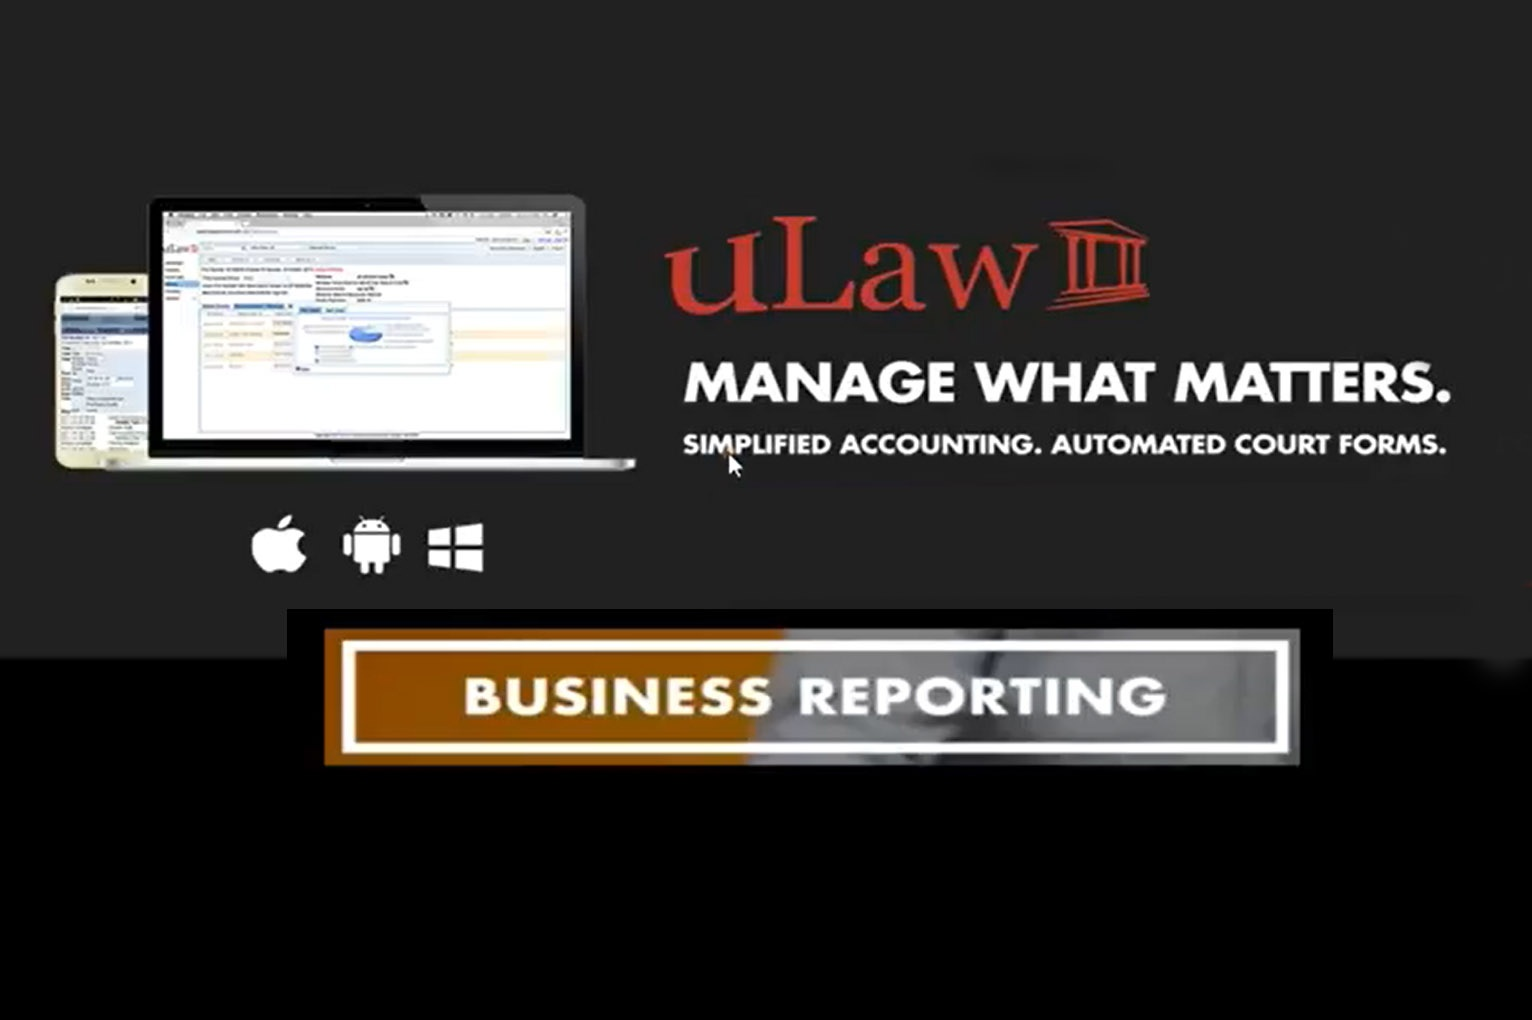 businessreporting-webinar